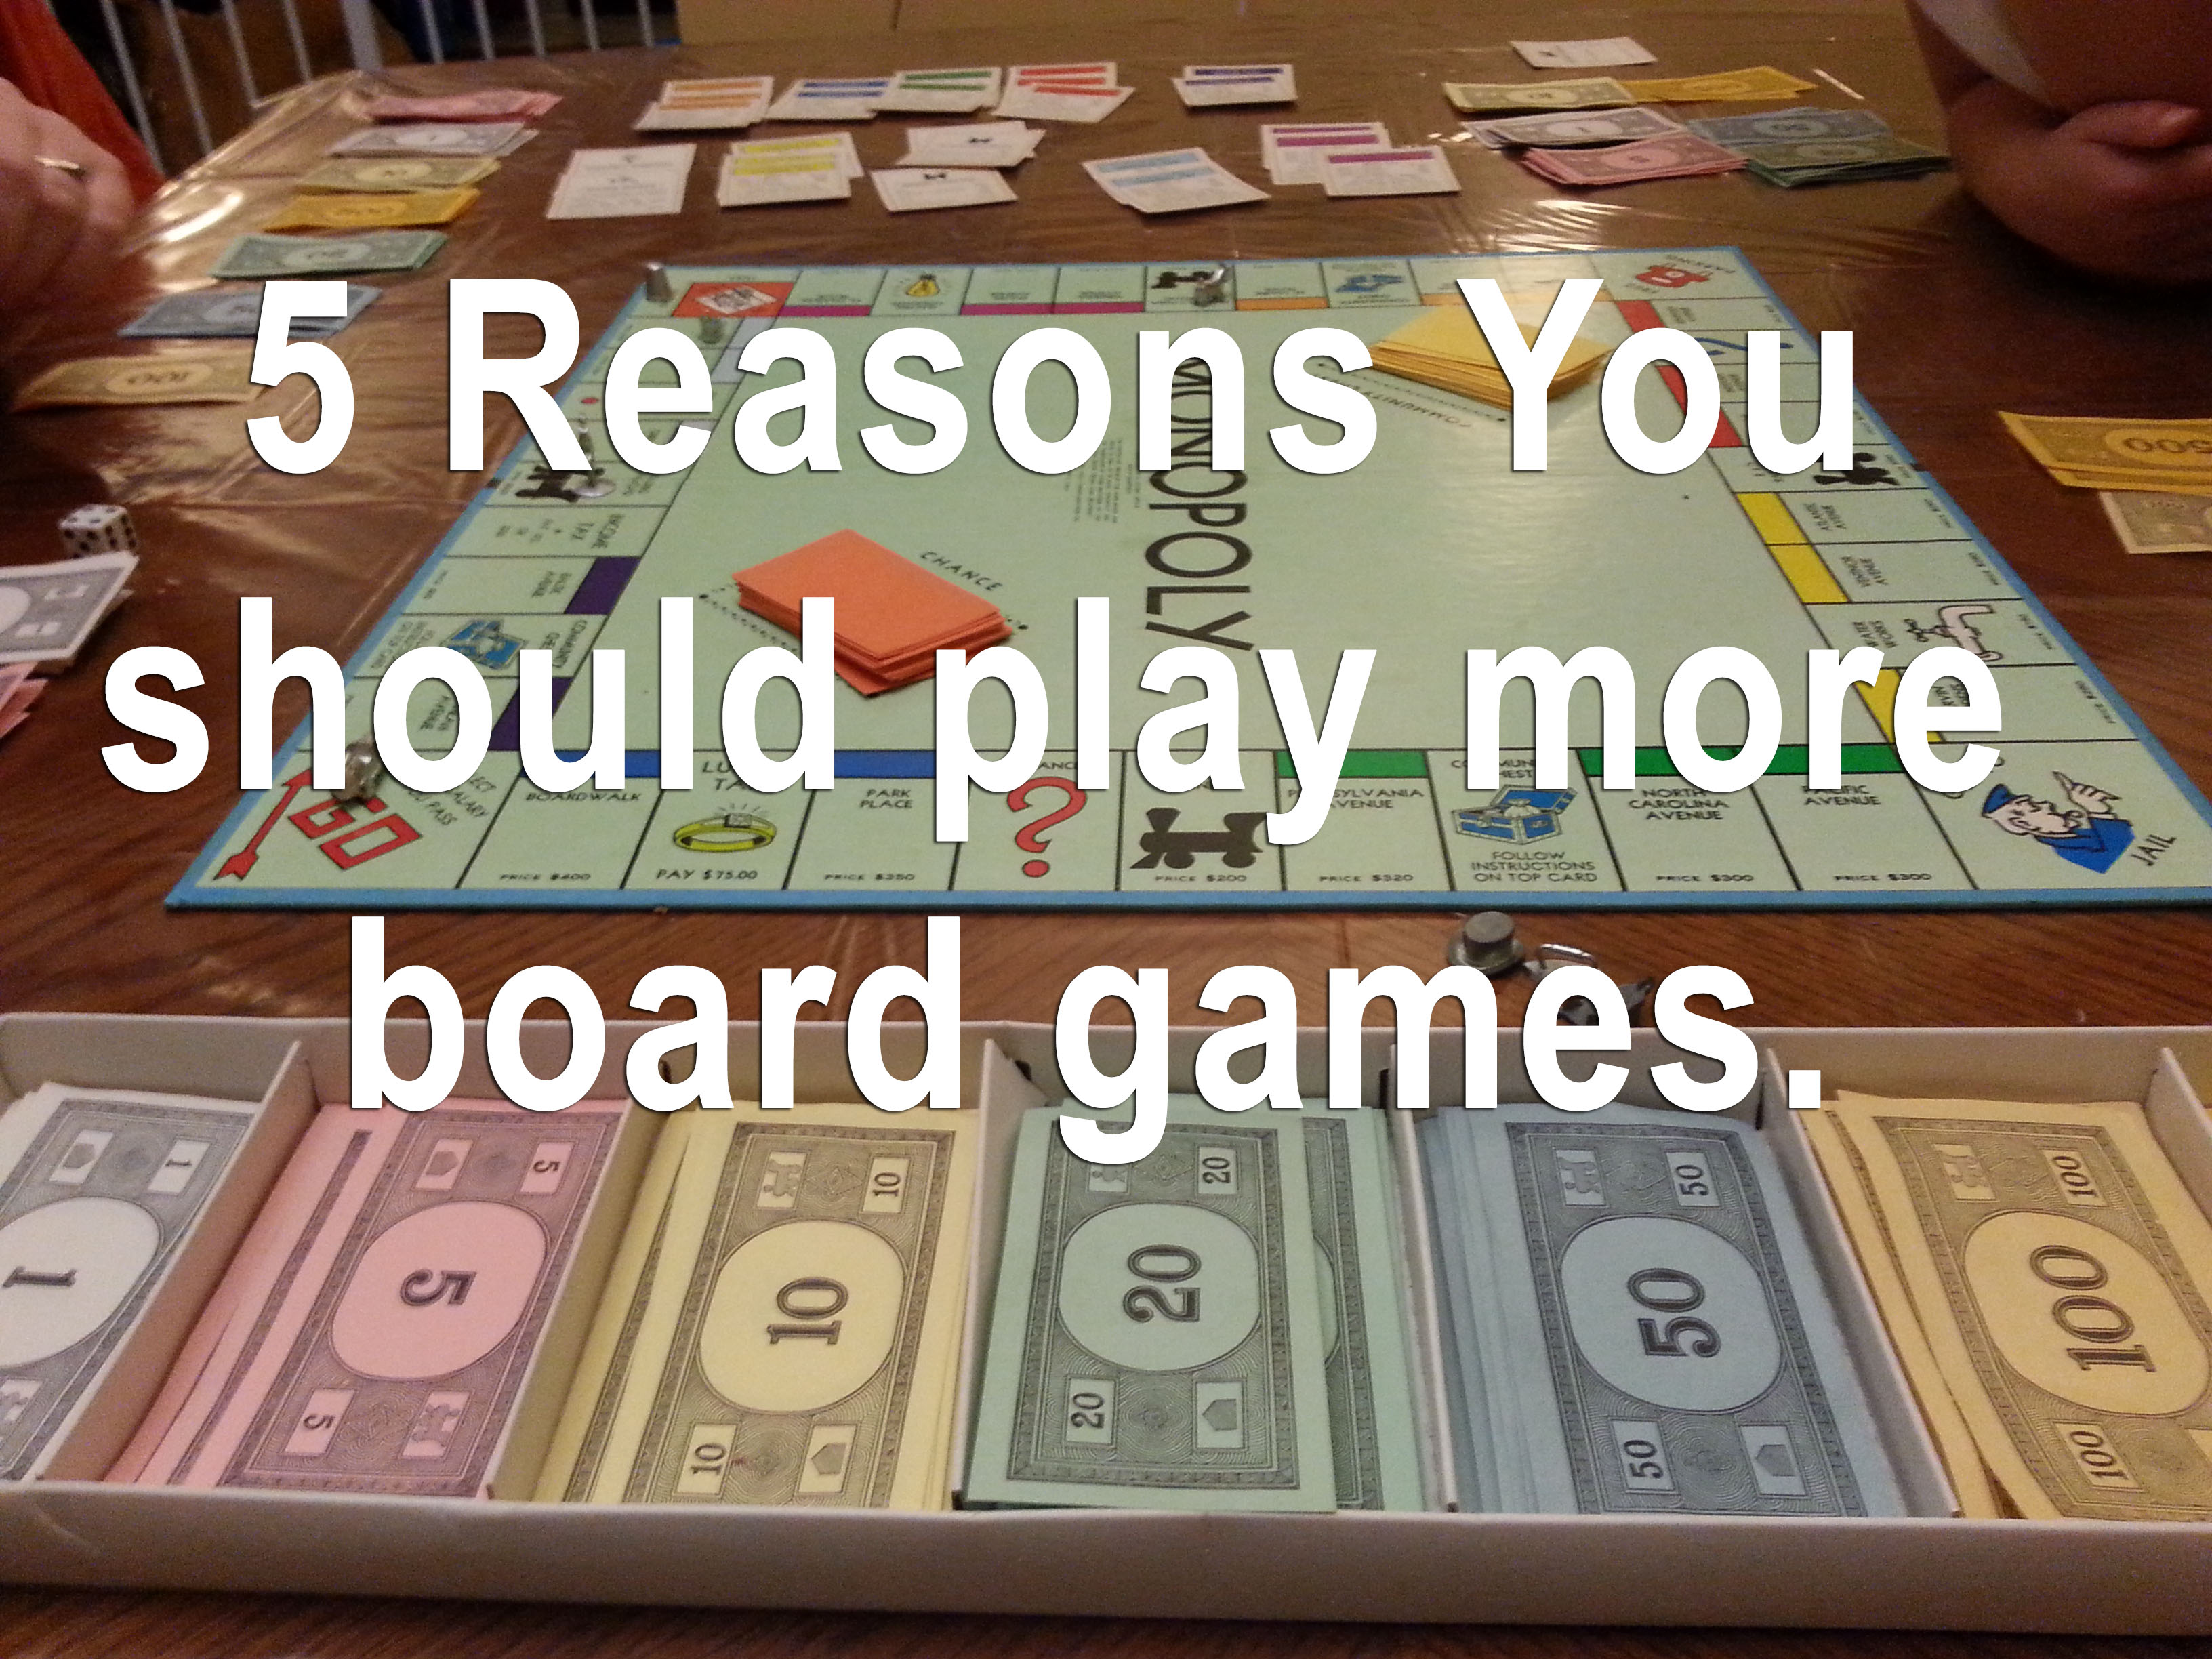 Playing tabletop games - Personal Benefits To Playing Board Games